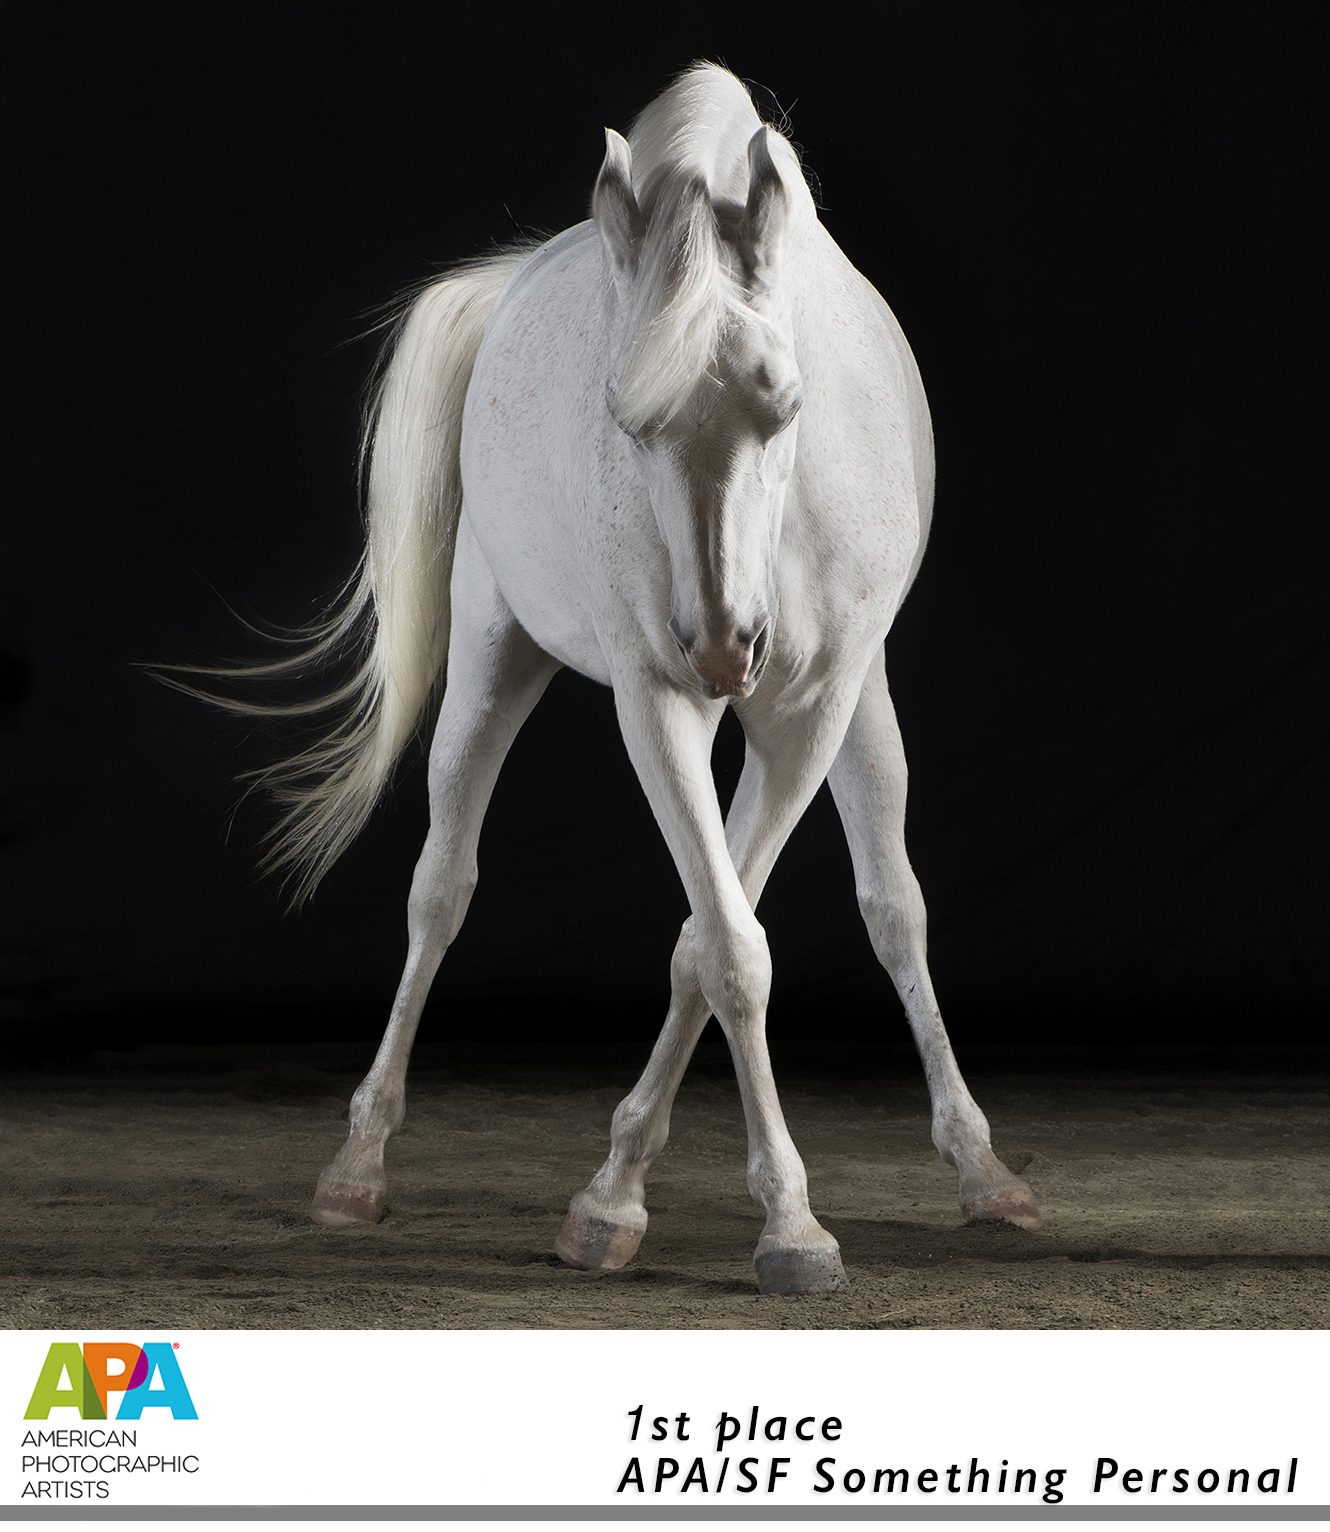 White / Gray Arabian Horse Dancing, a fine Art Equine Photograph